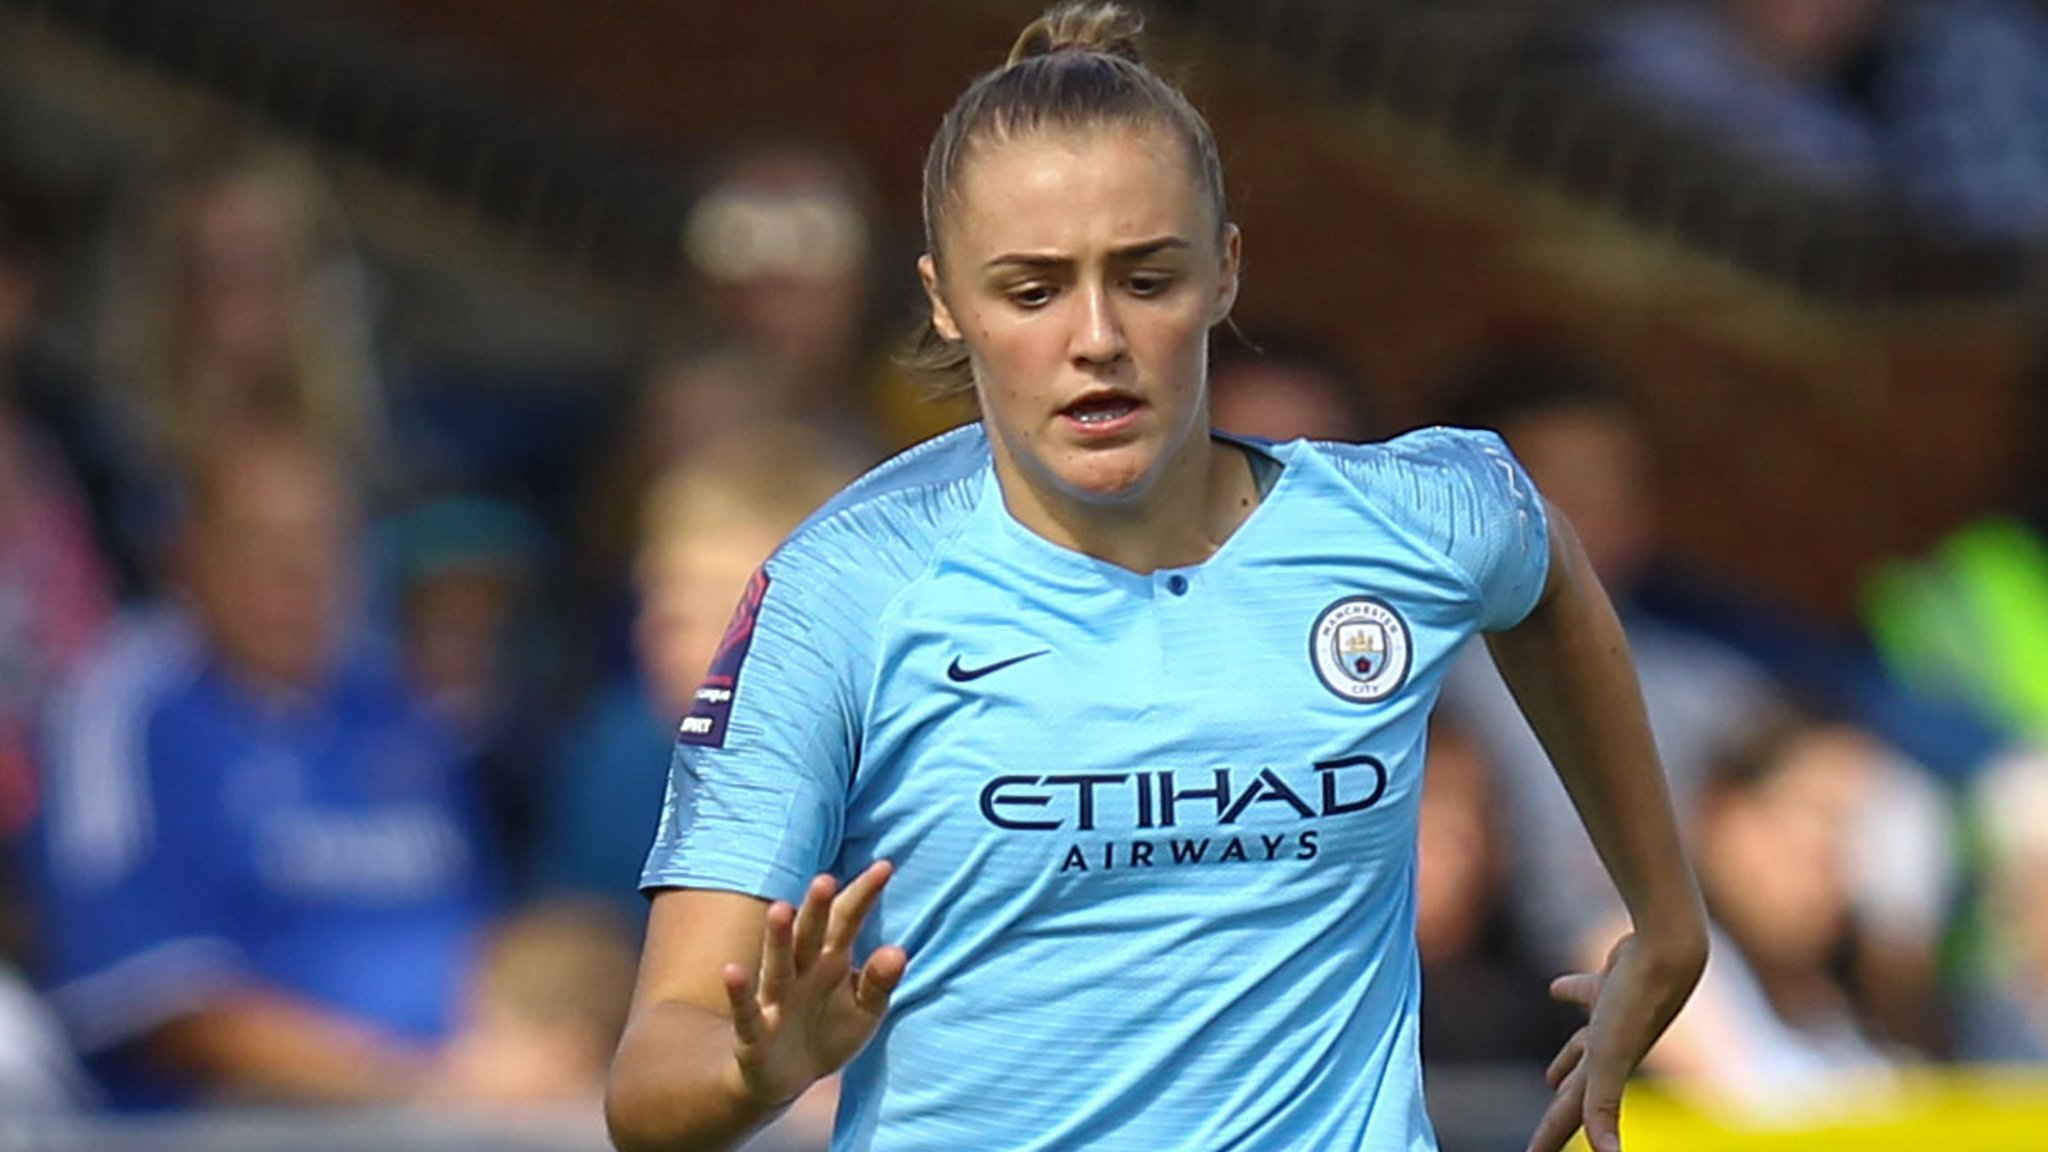 Brighton & Hove Albion Women 0-6 Manchester City Women: Stanway scores hat-trick